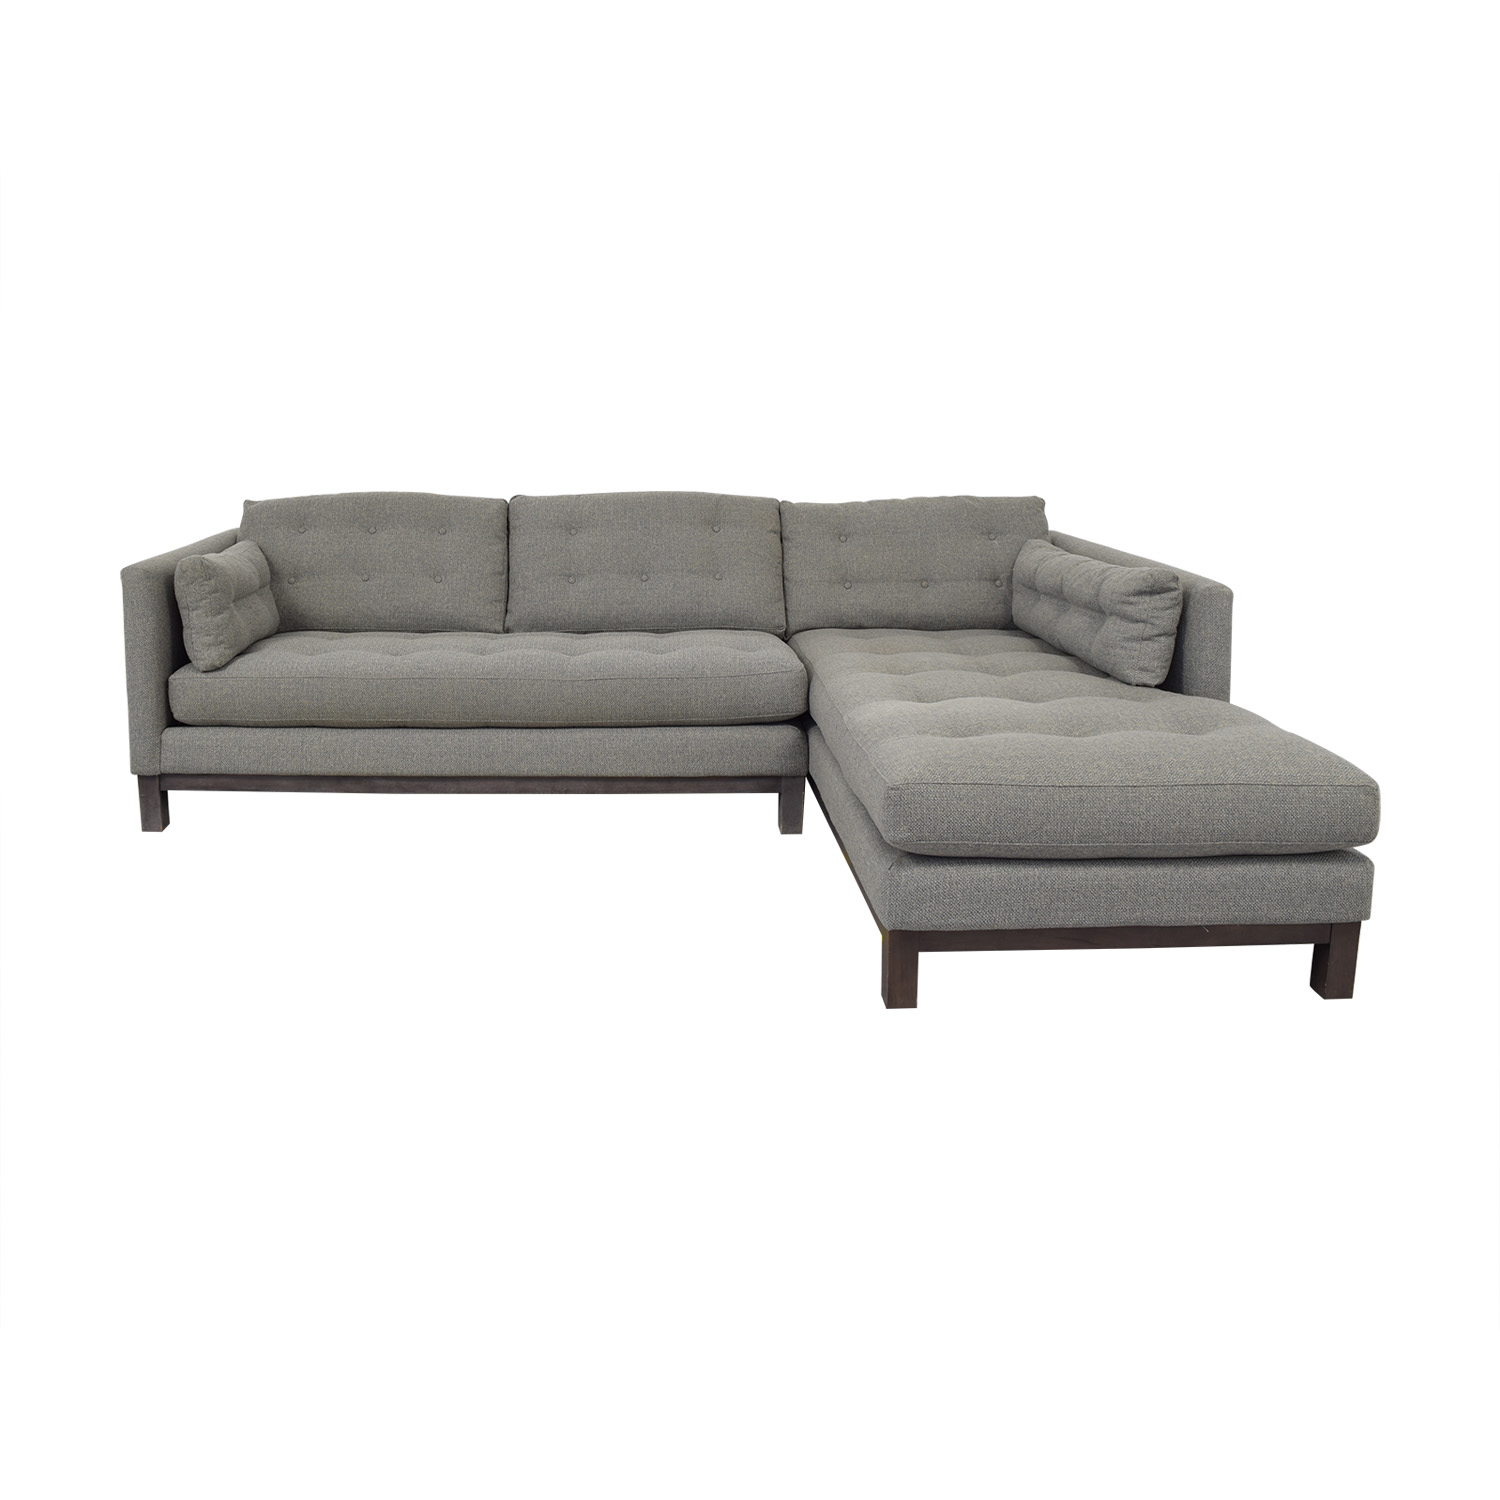 58% OFF - McCreary Modern McCreary Modern Sectional Chaise Sofa / Sofas